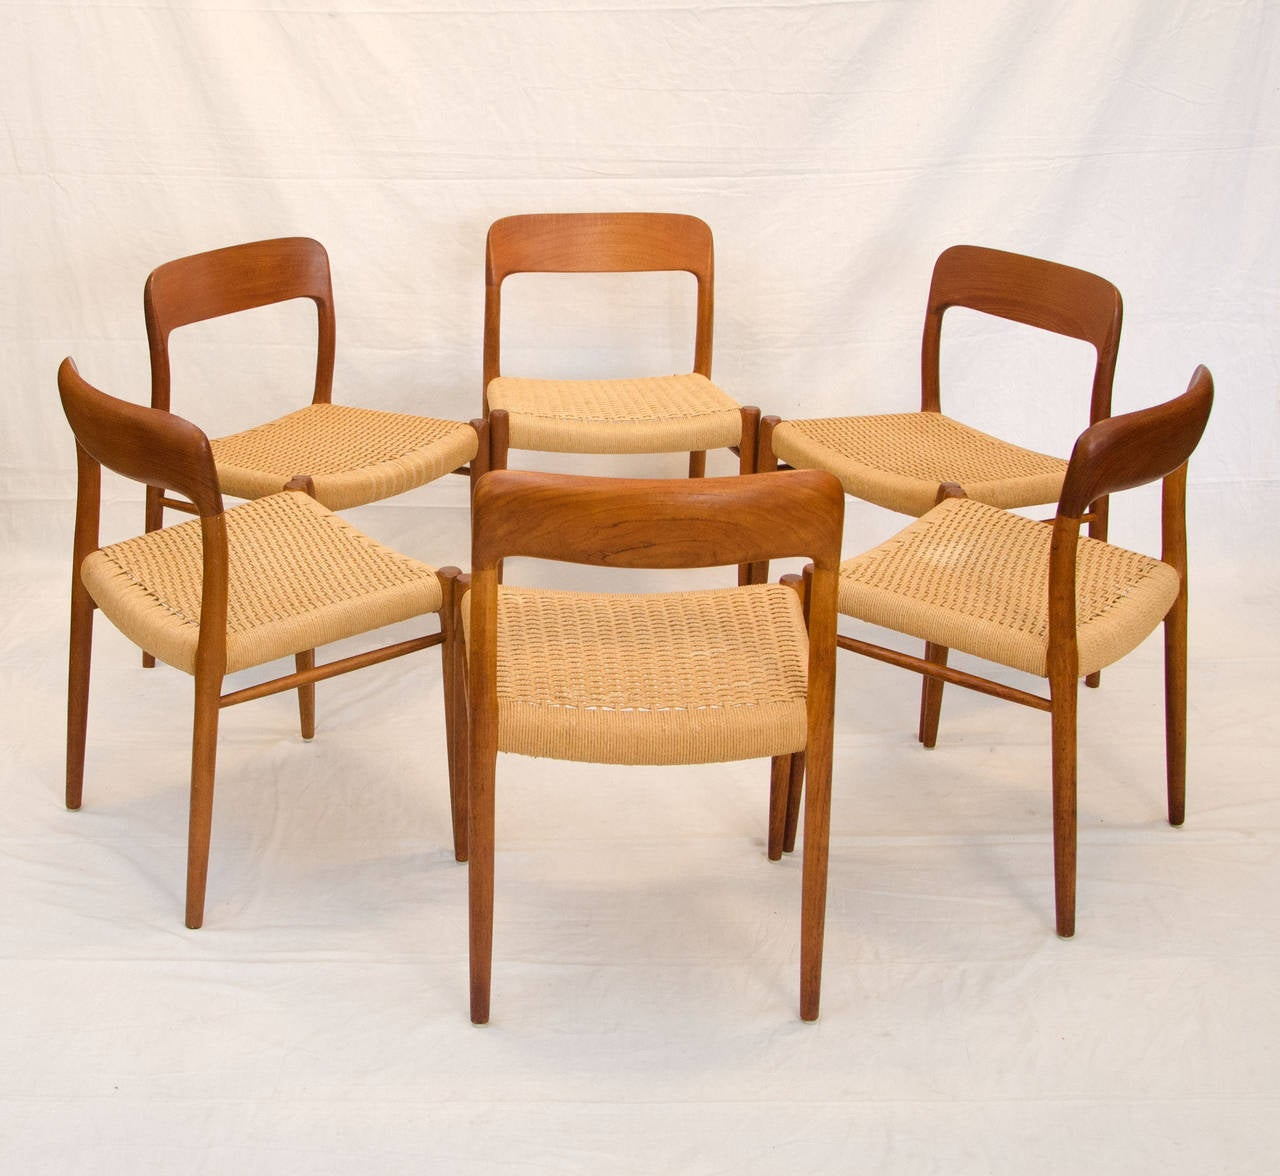 Four Danish Teak Dining Chairs Niels Moller 75 At 1stdibs